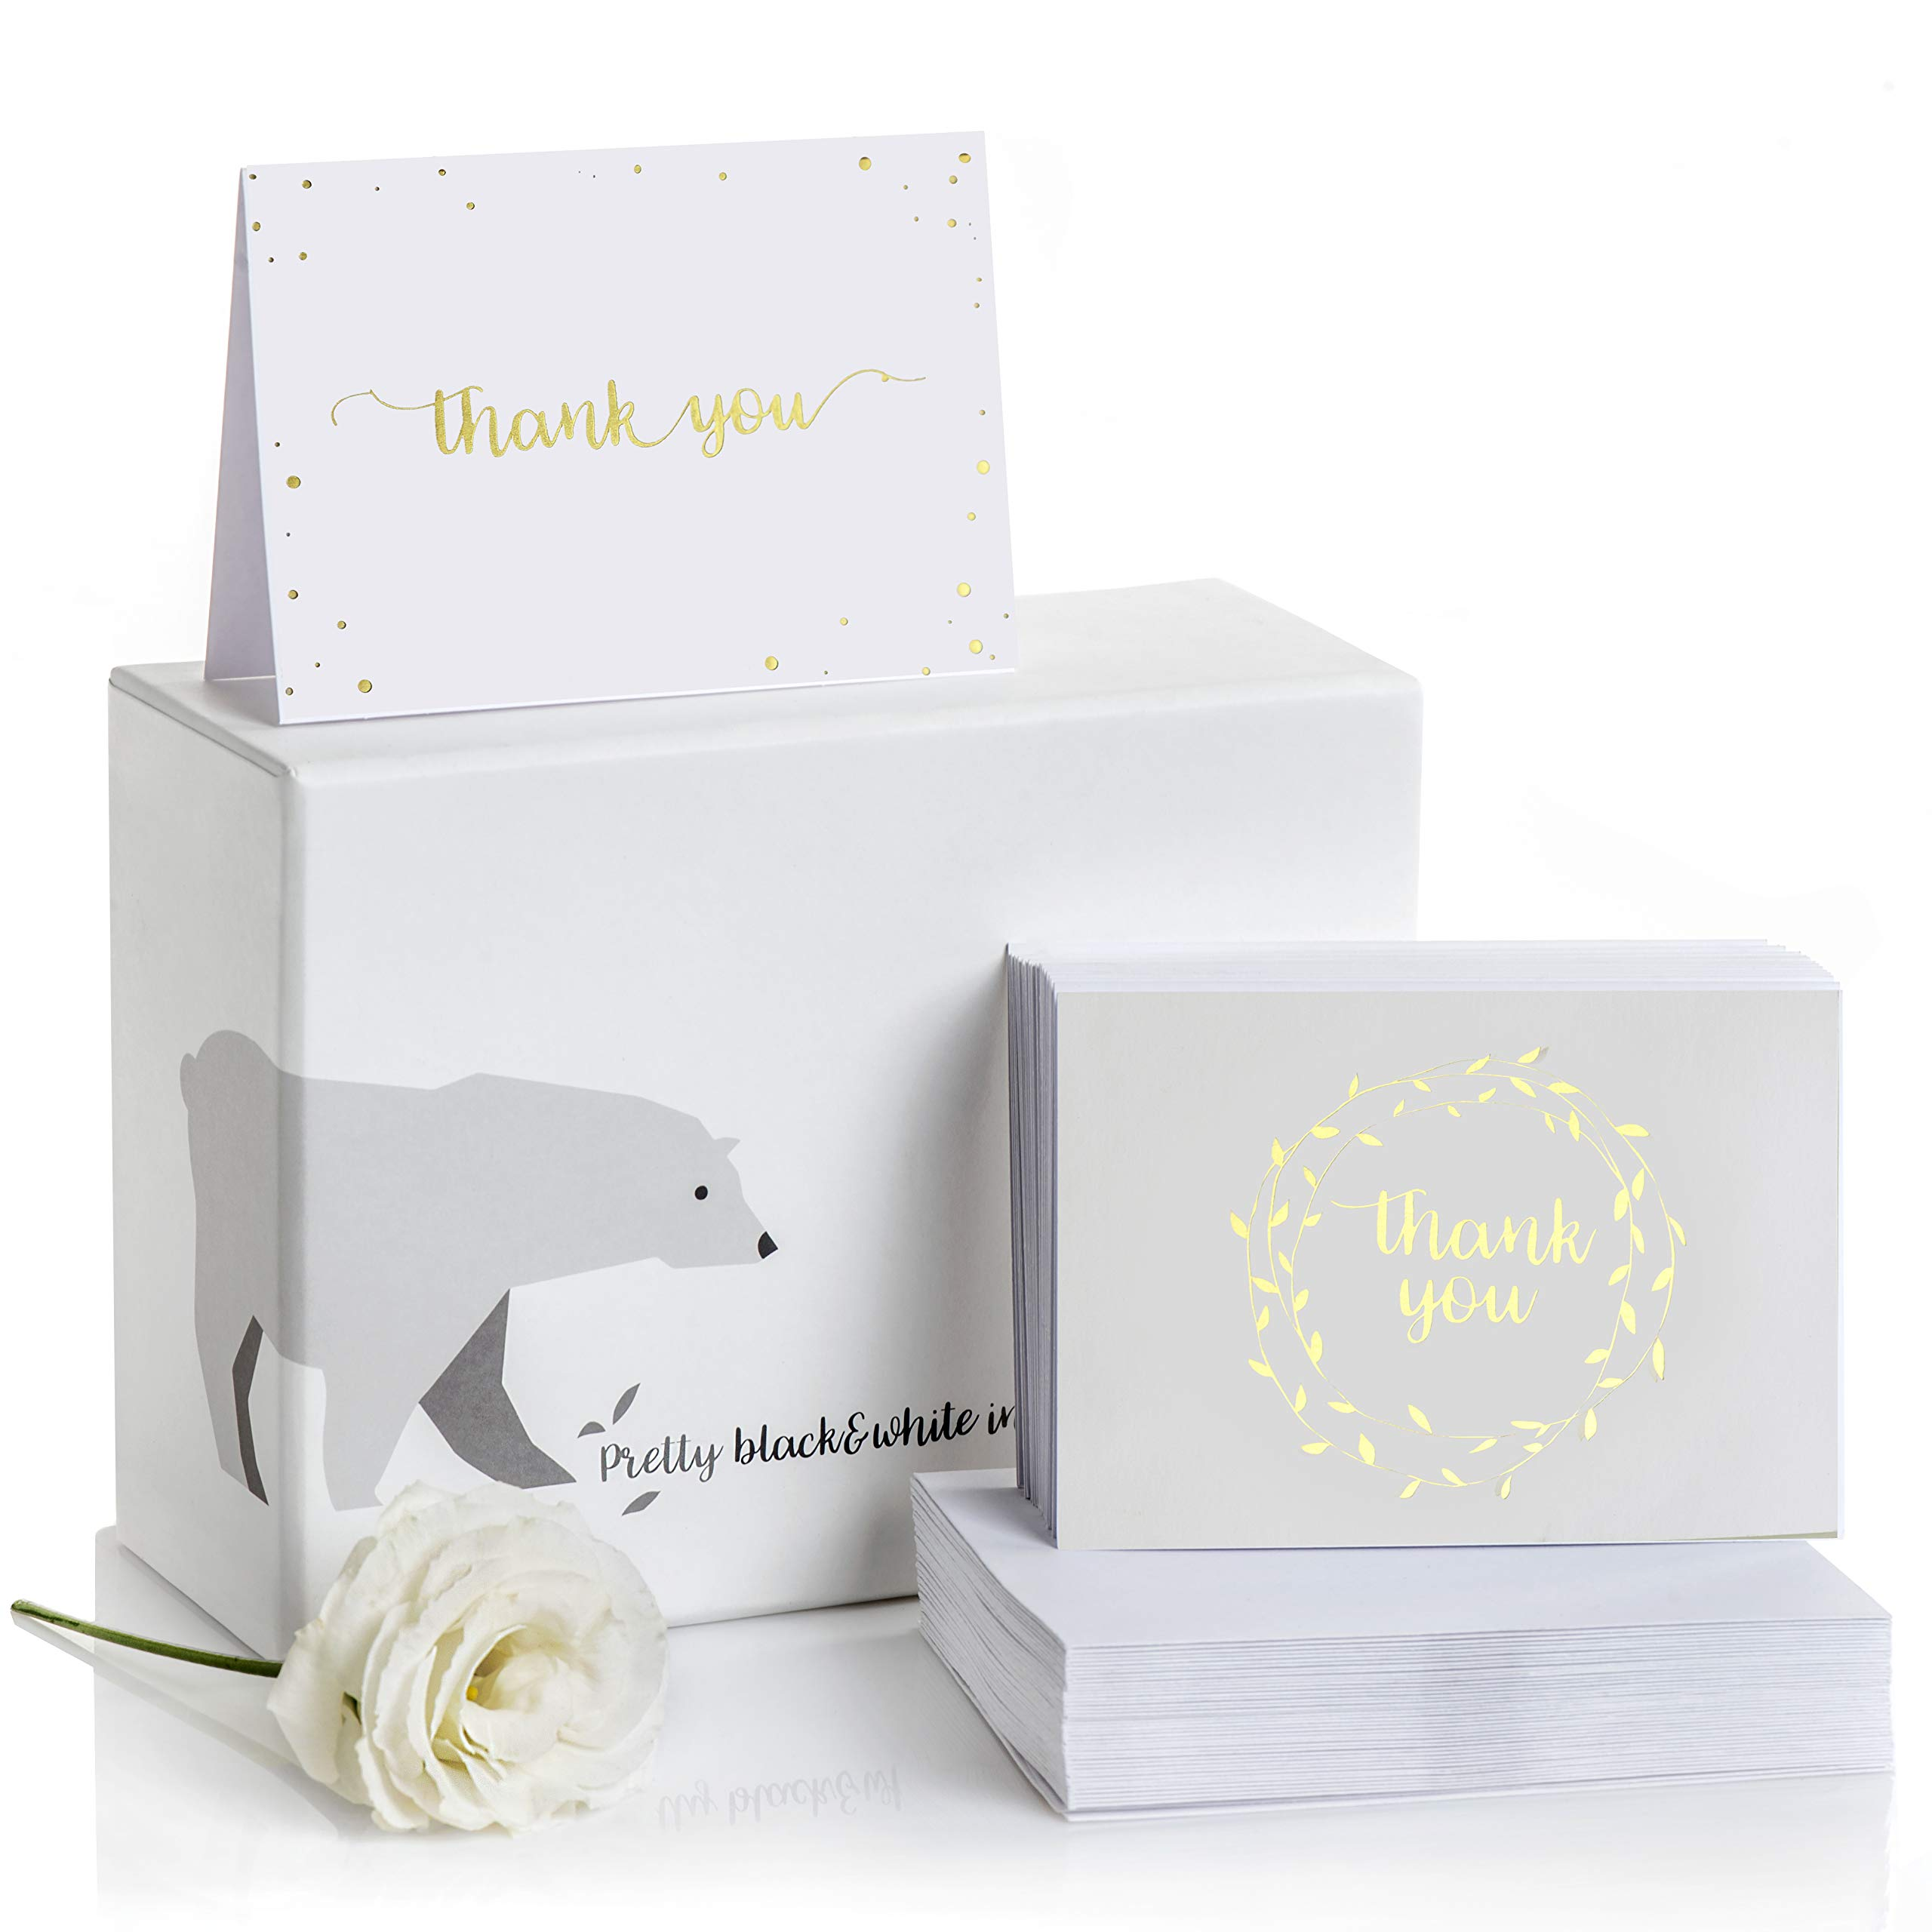 Thank You Cards-2 Designs of Blank Thank You Notes and Self-Seal Envelopes-Stationary Set to Give Thanks for Wedding, Bridal Shower, Professional, Any Occasion by Alice & Ben (Gold, 100-Pack)